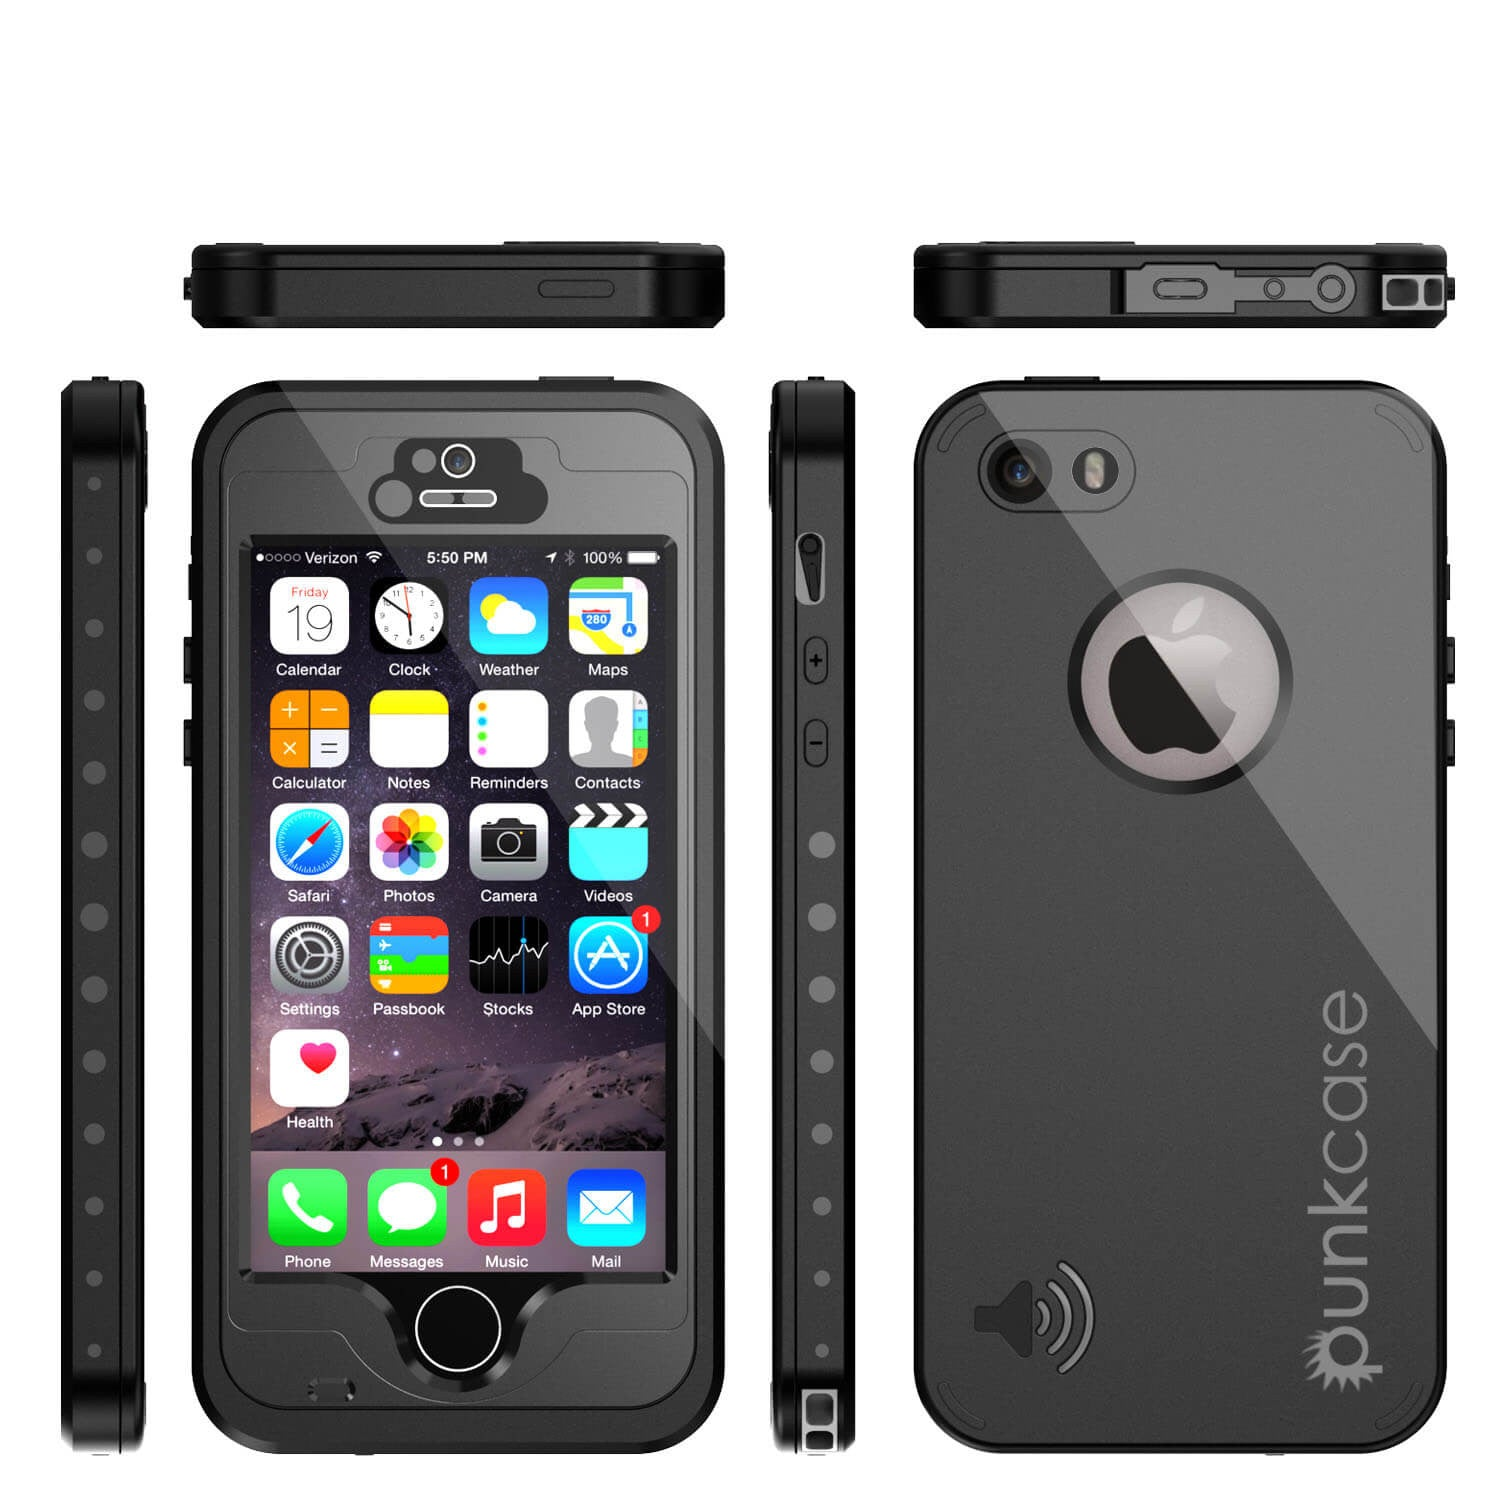 iPhone 5S/5 Waterproof Case, PunkCase StudStar Black Case Water/Shock/Dirt Proof | Lifetime Warranty